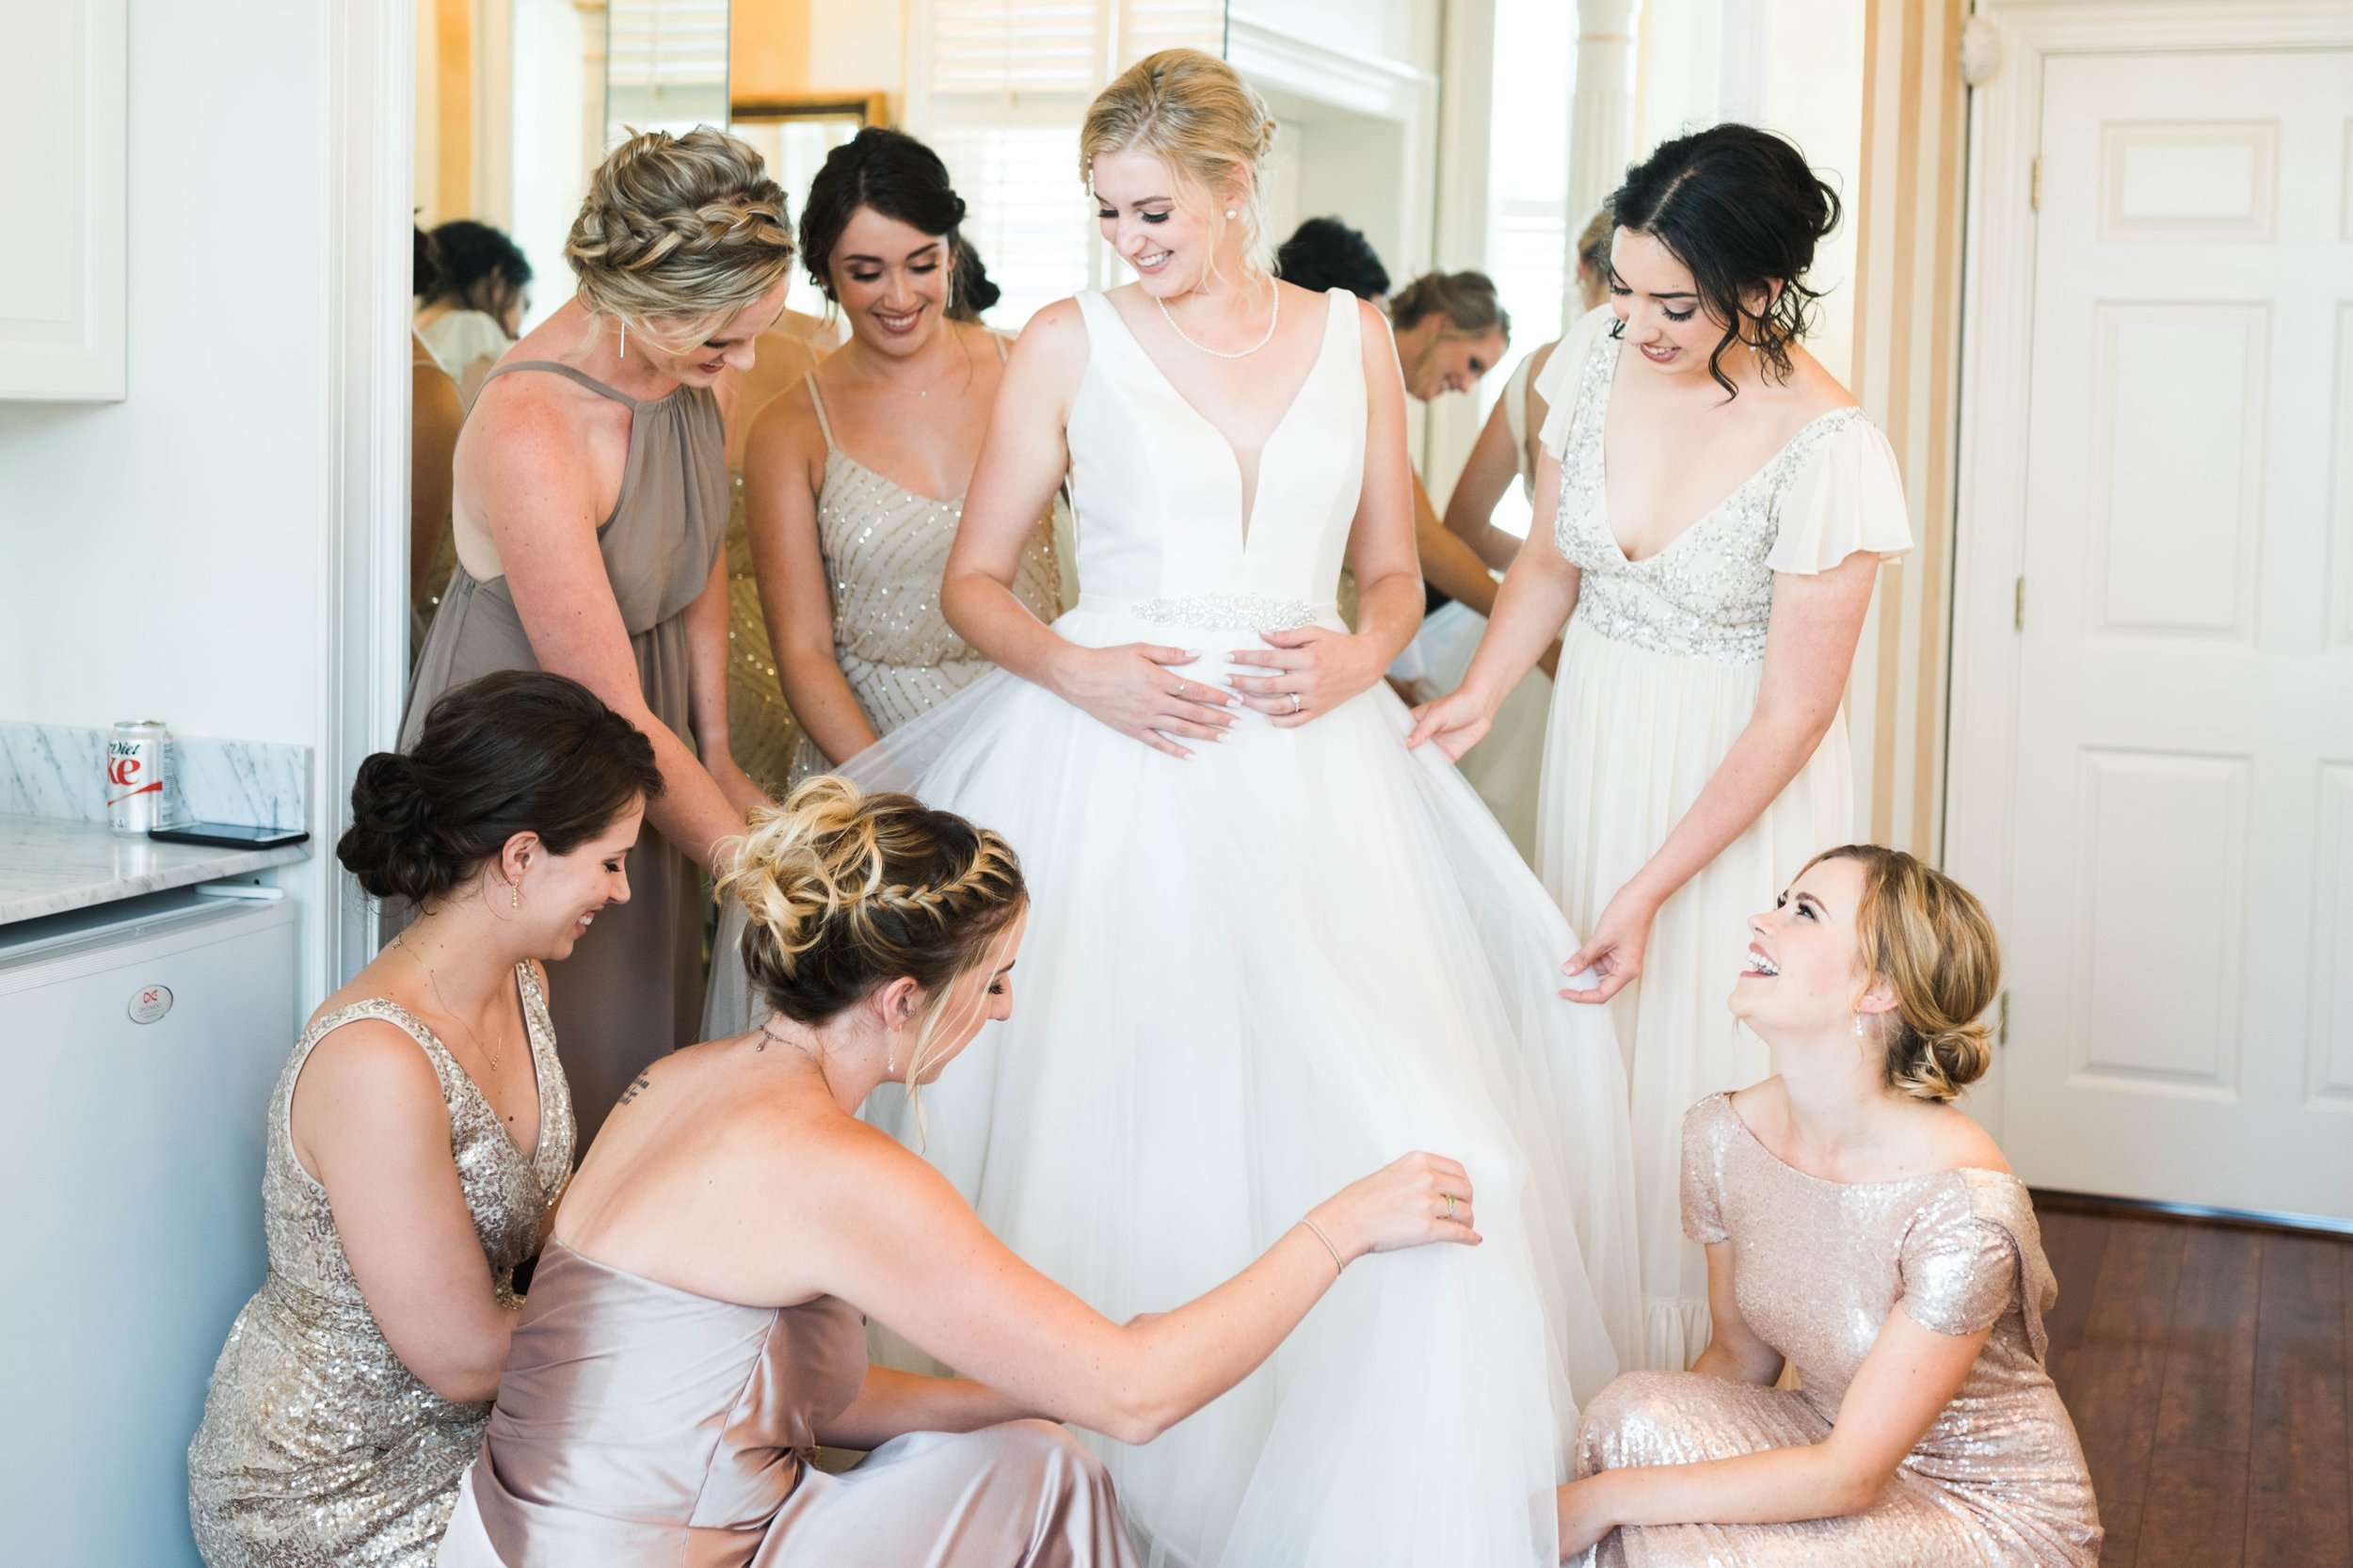 westmanorestate_entwinedevents_lynchburgweddingphotographer_Virginiaweddingphotographer_kateyam 12.jpg